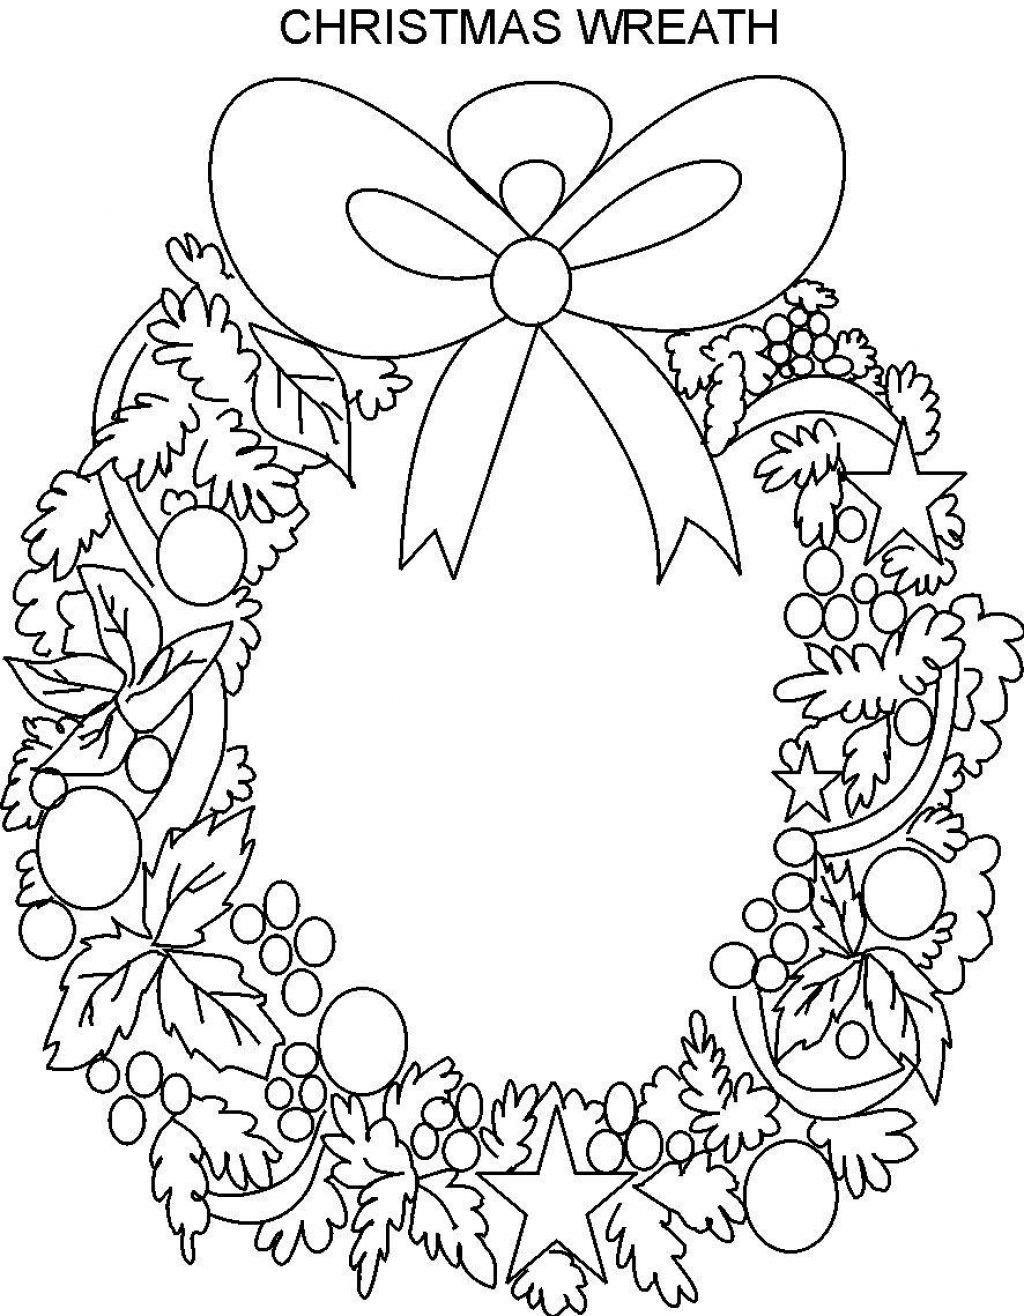 Christmas Coloring Pages Wreath Gifts Bow Free Christmas Coloring Pages Advent Coloring Coloring Pages